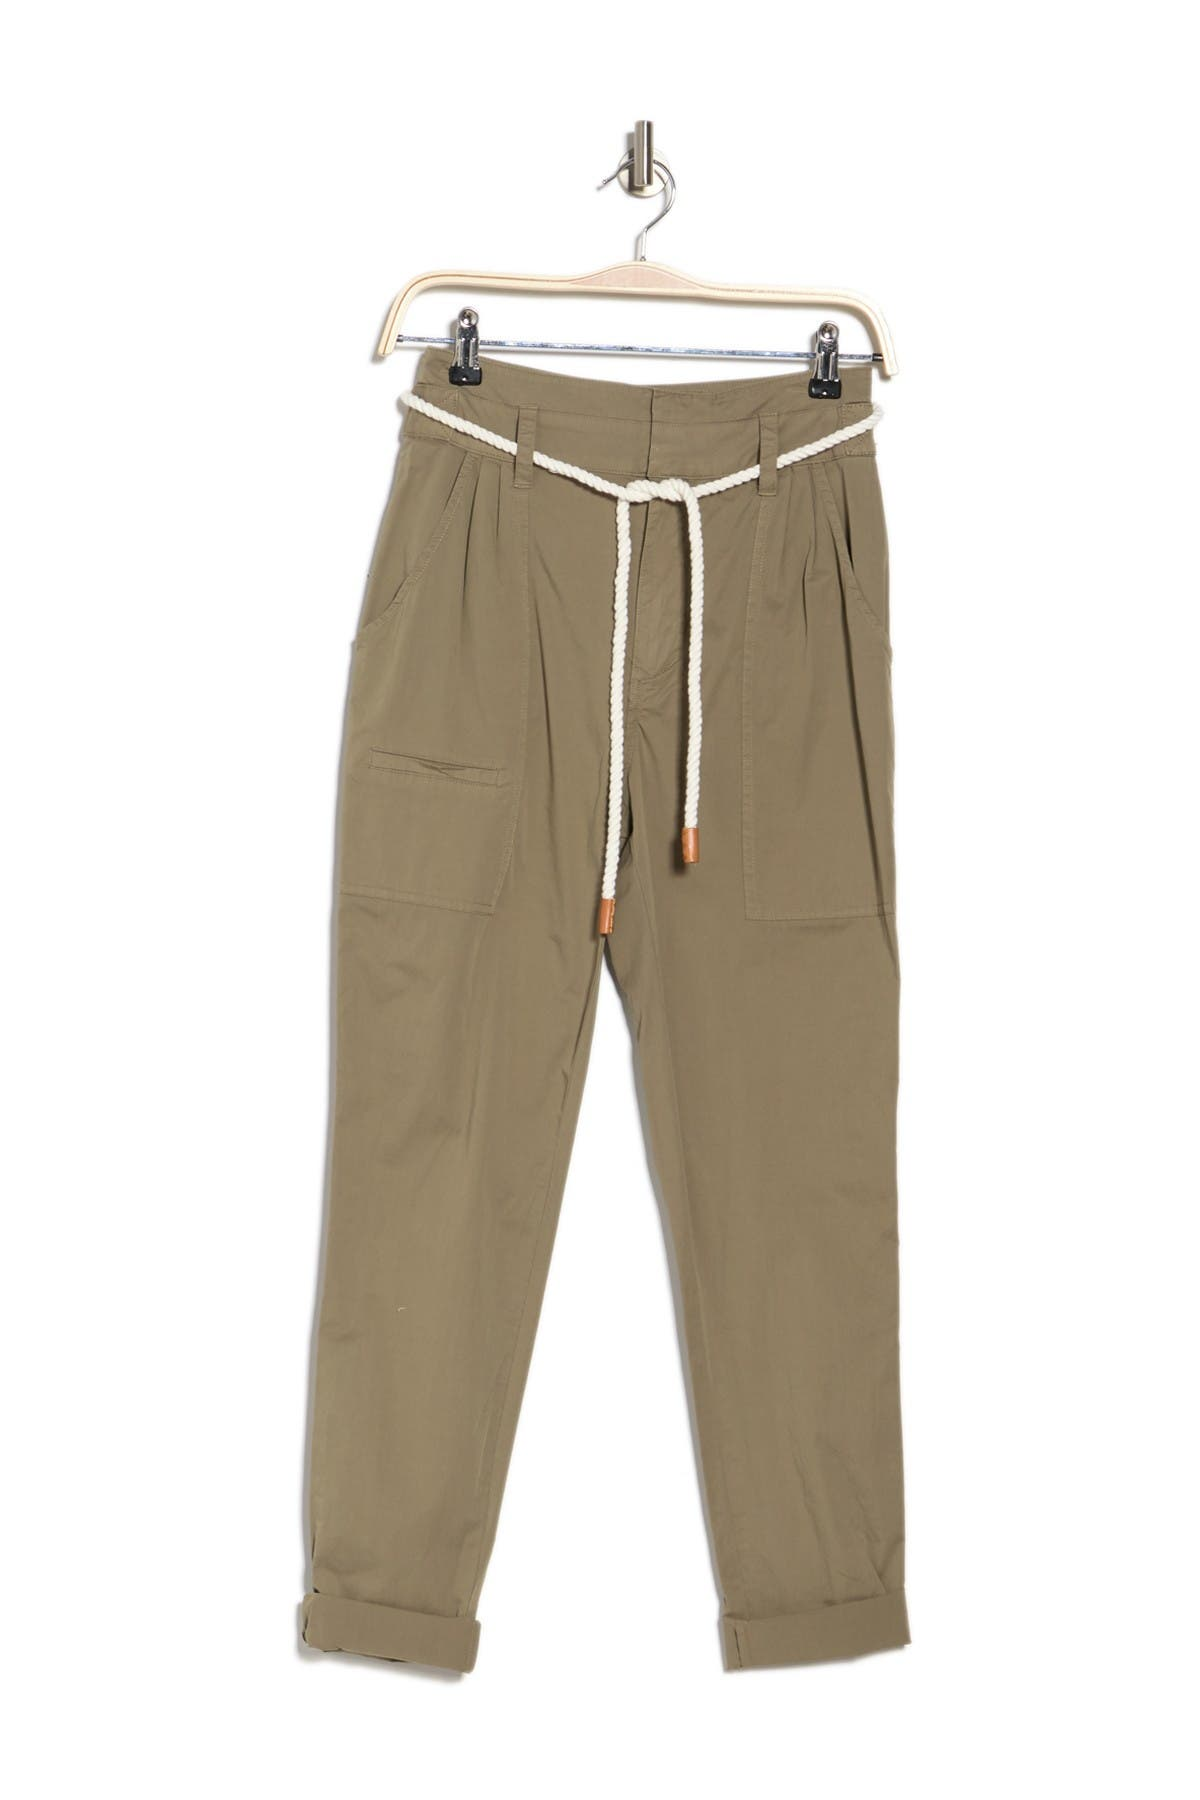 Image of FRAME Casual Waist Tie Pleated Trousers